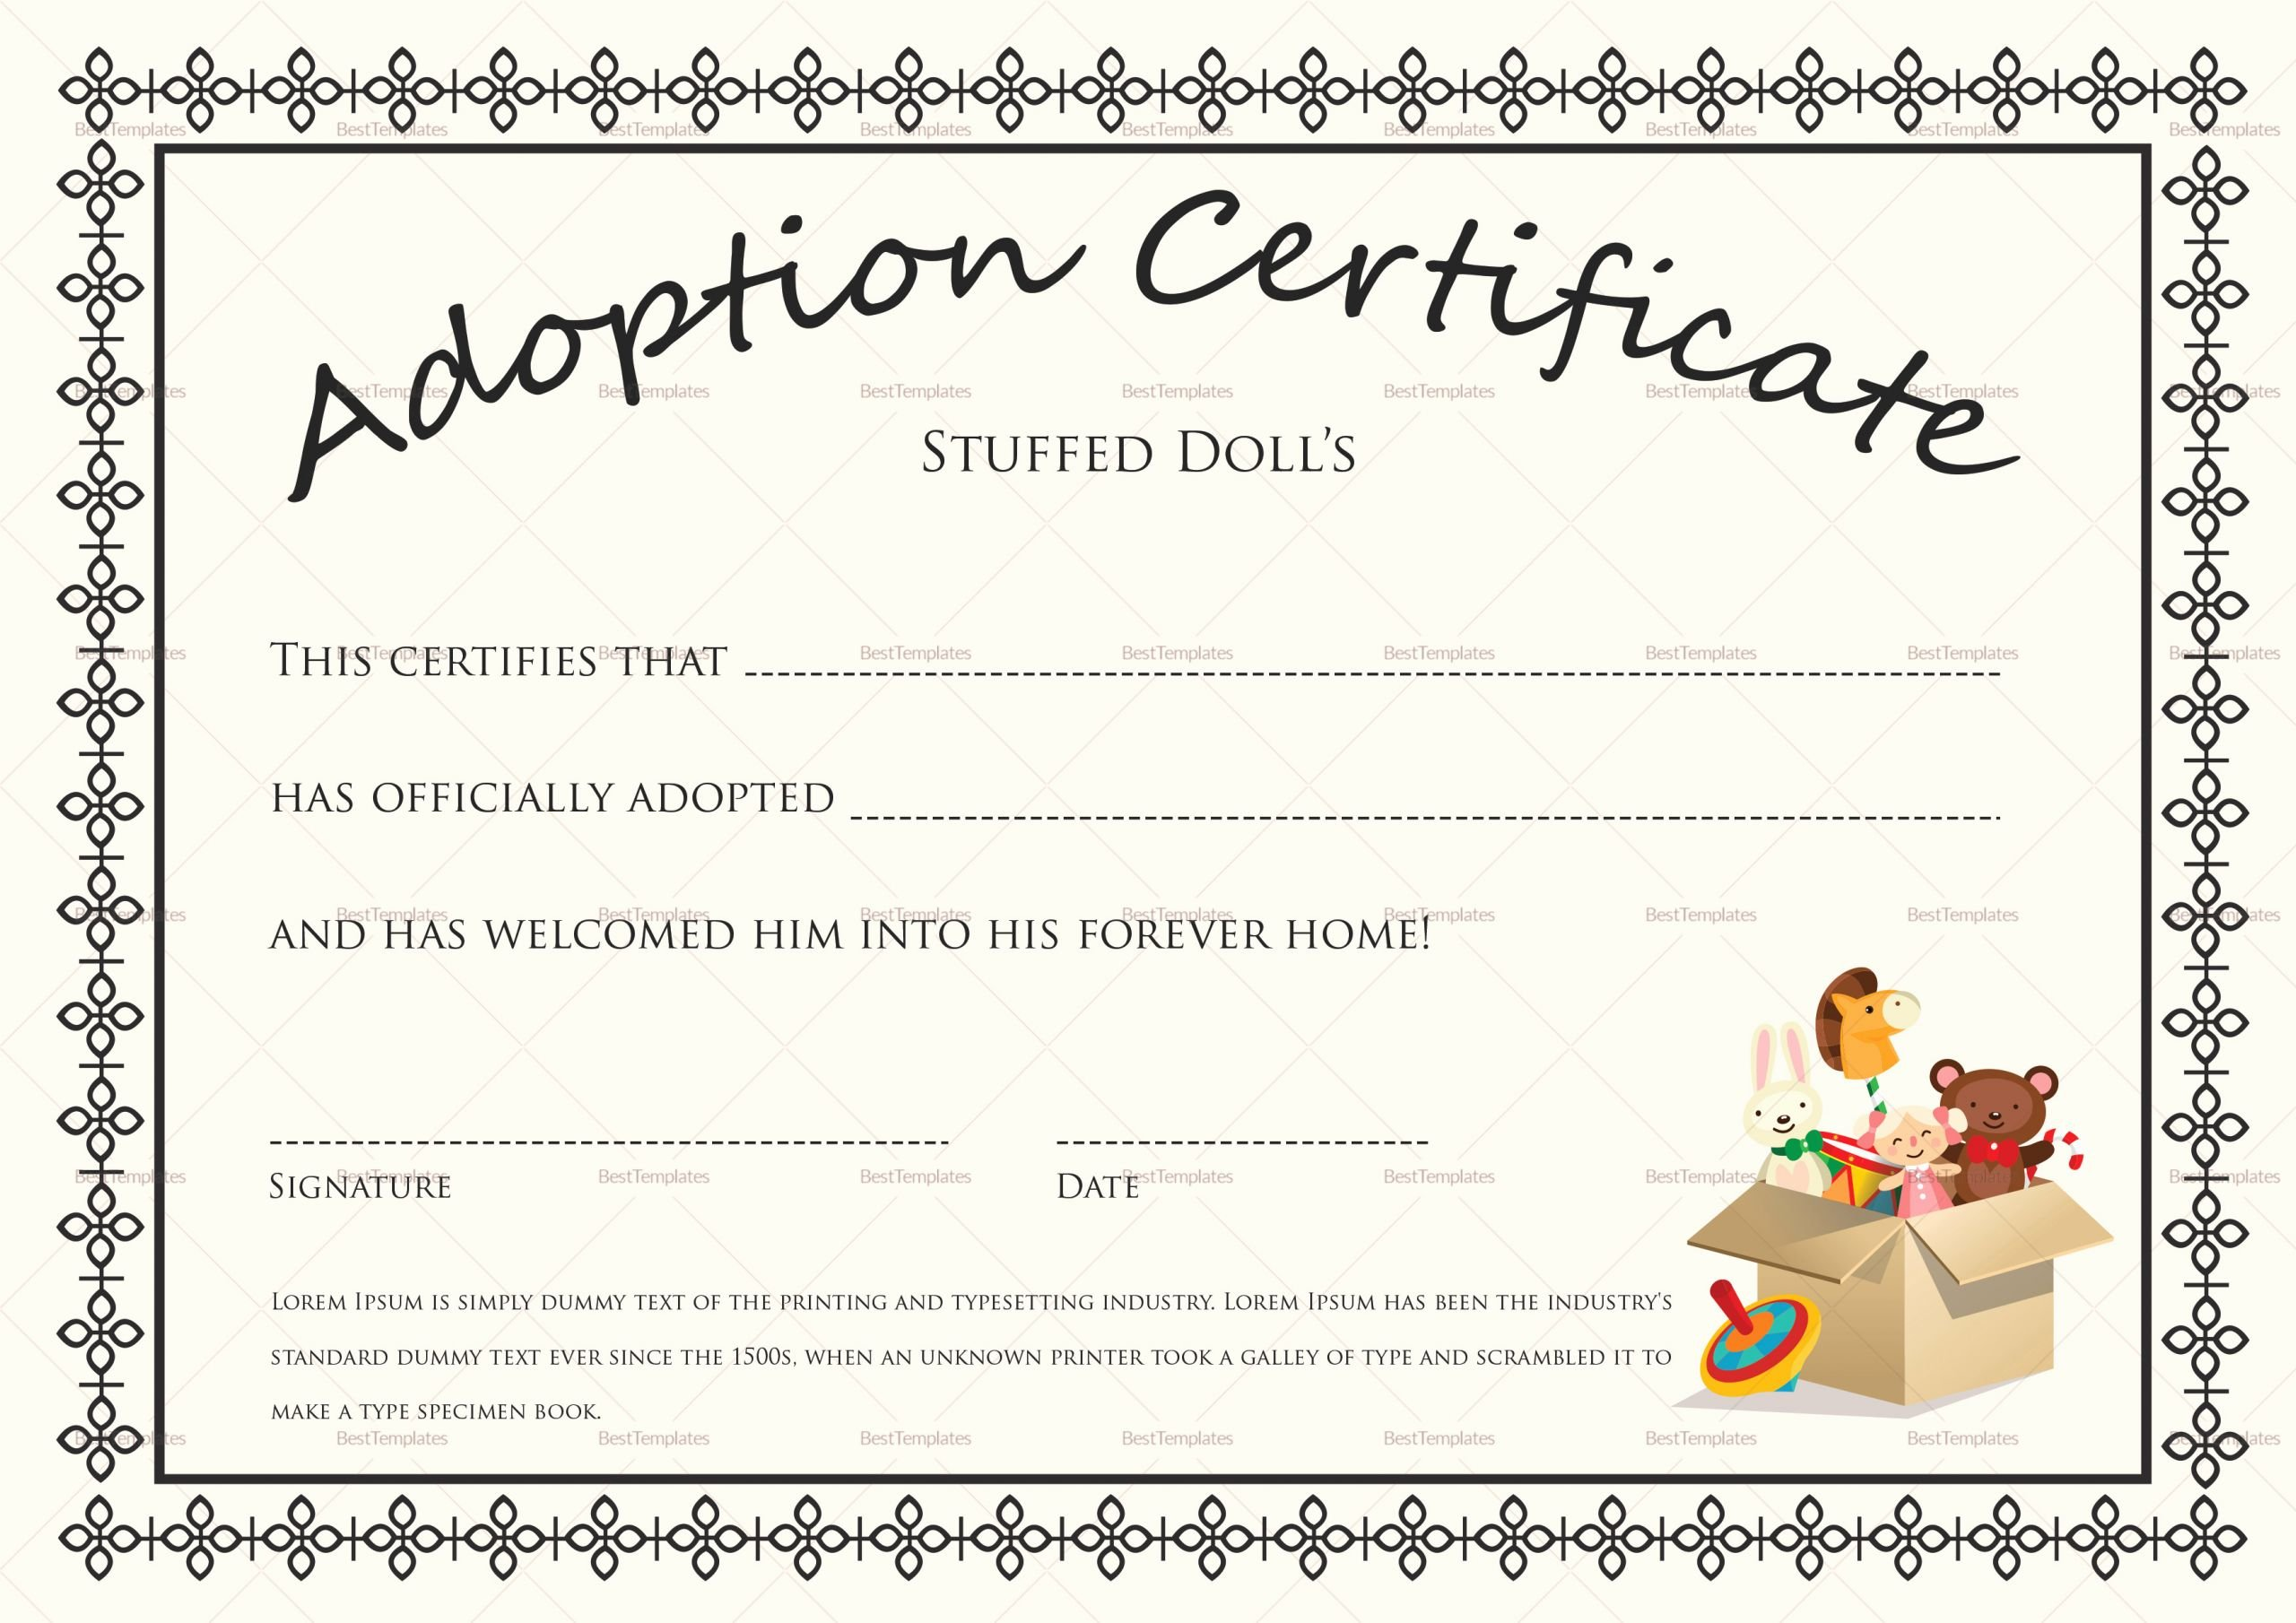 Child Adoption Certificate Template Unique Doll Adoption Certificate Design Template In Psd Word